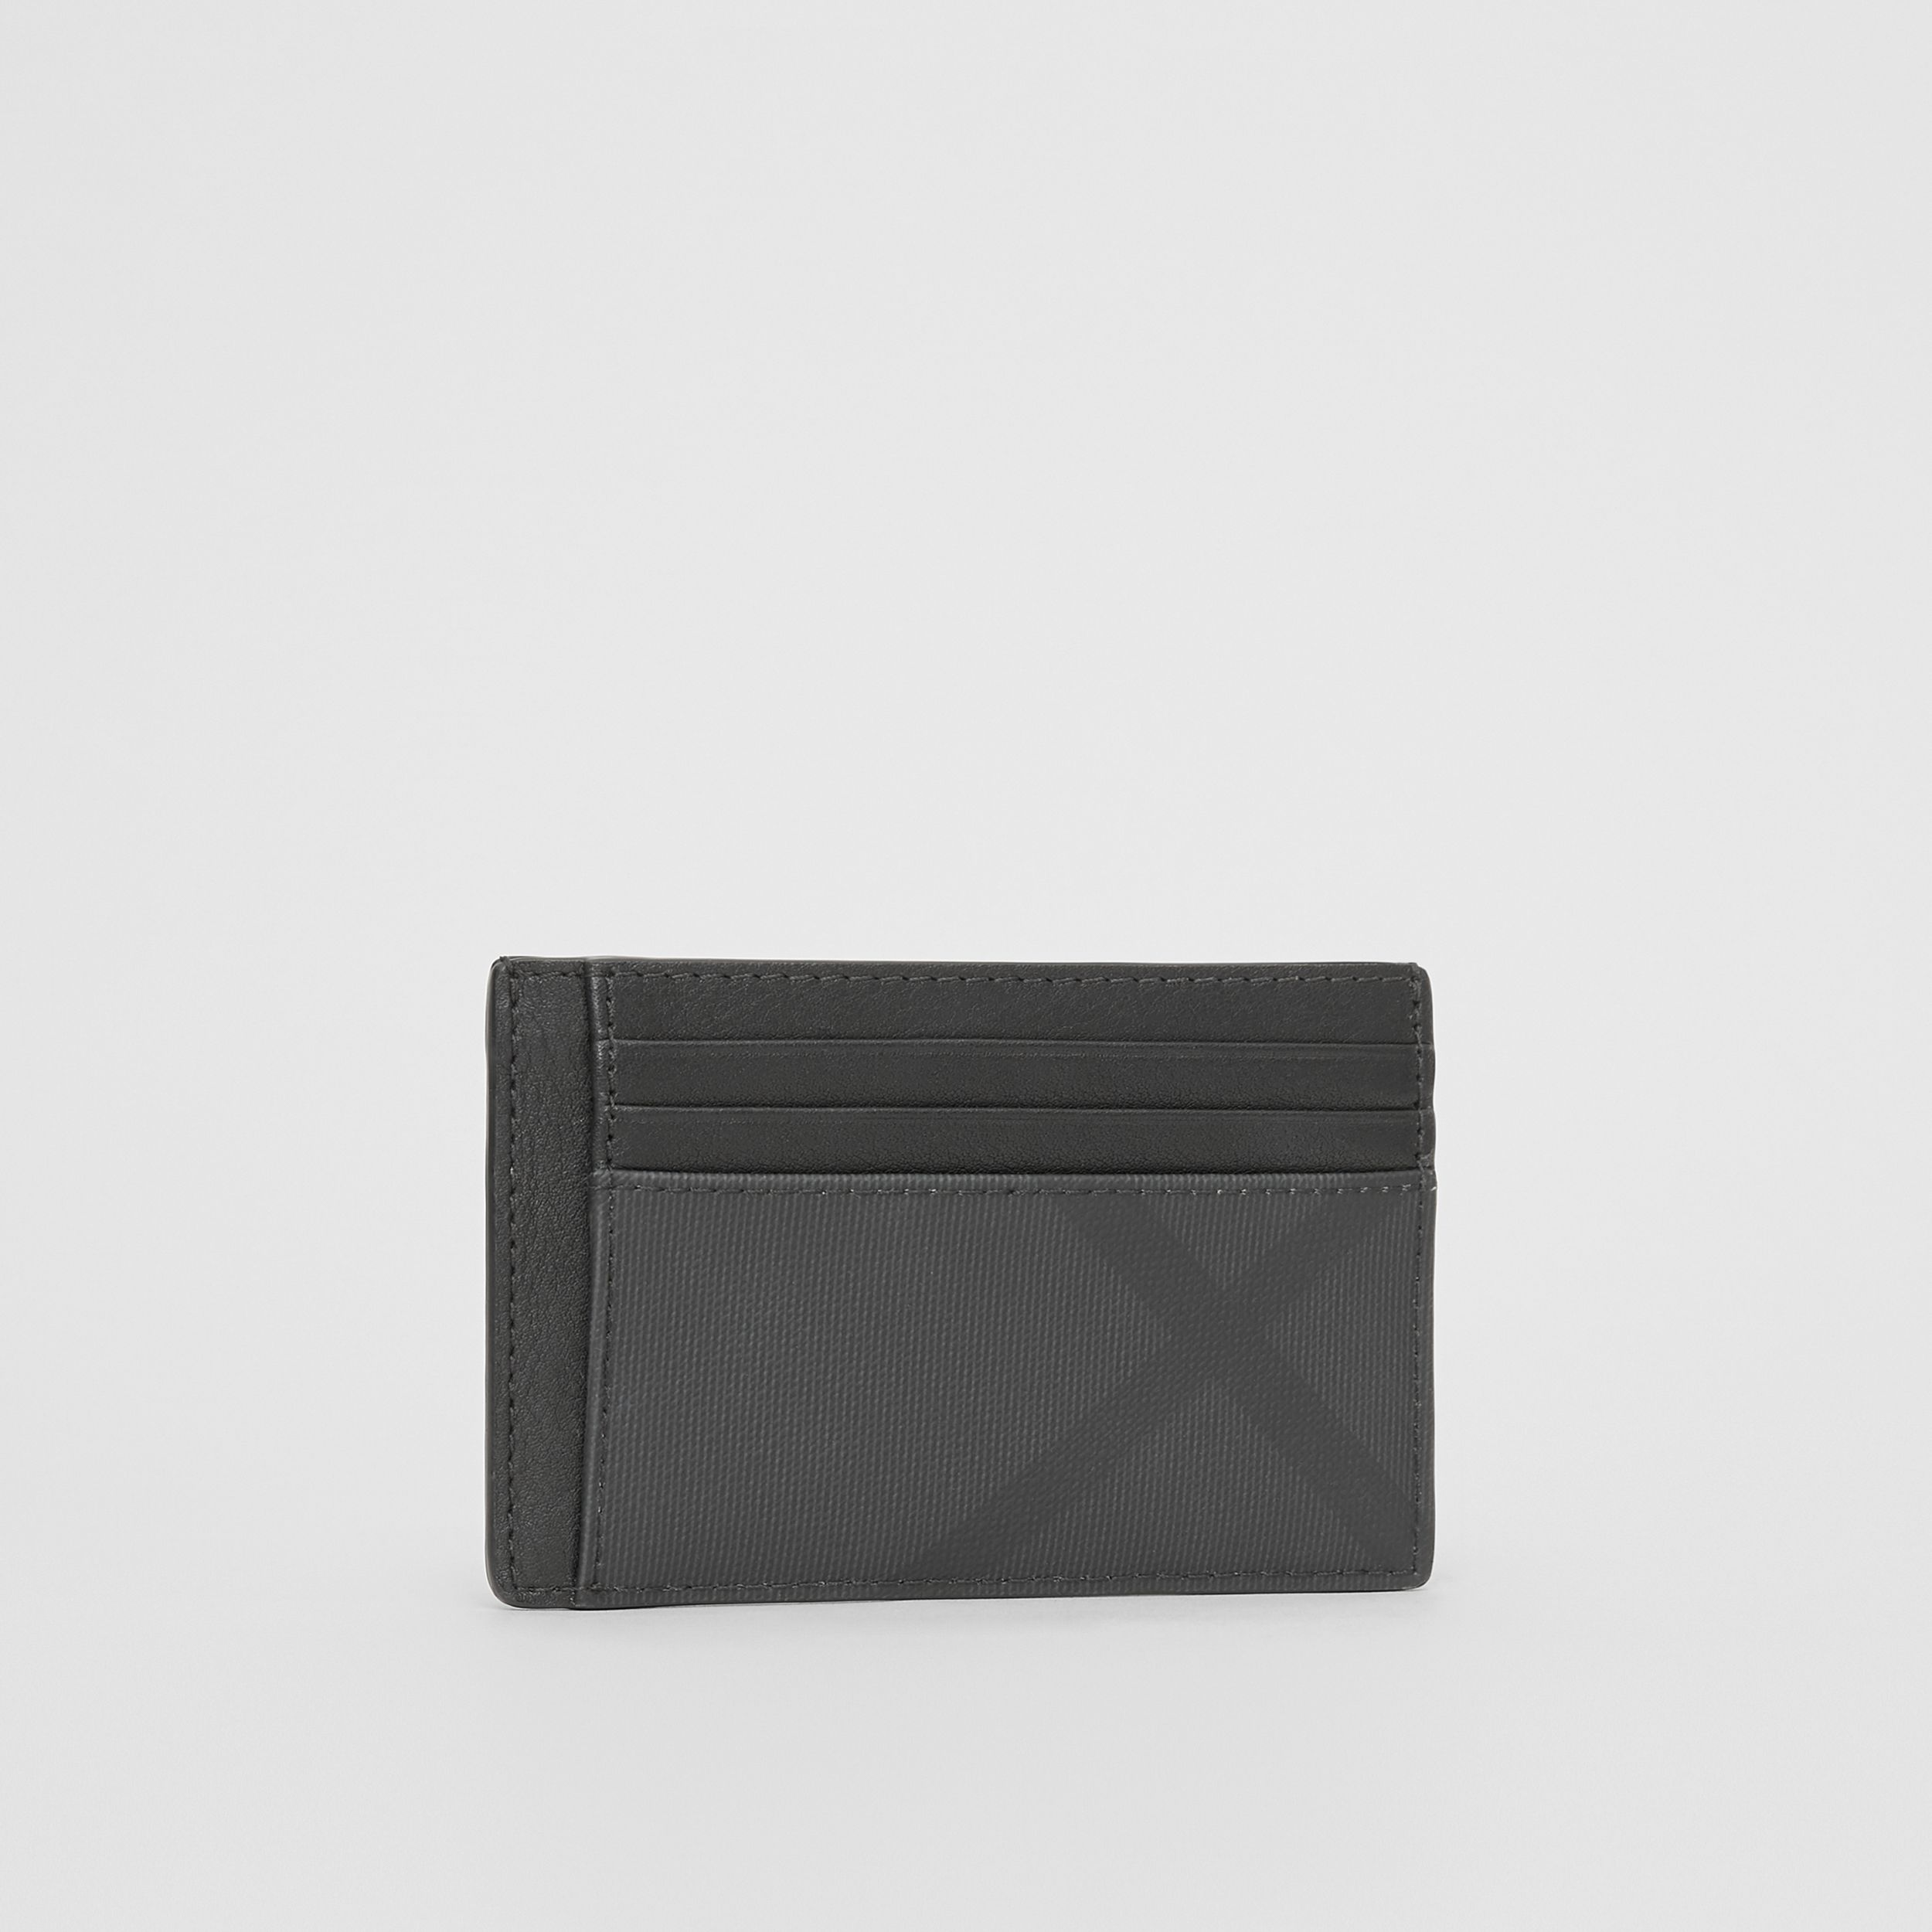 London Check and Leather Money Clip Card Case in Dark Charcoal - Men | Burberry - 4